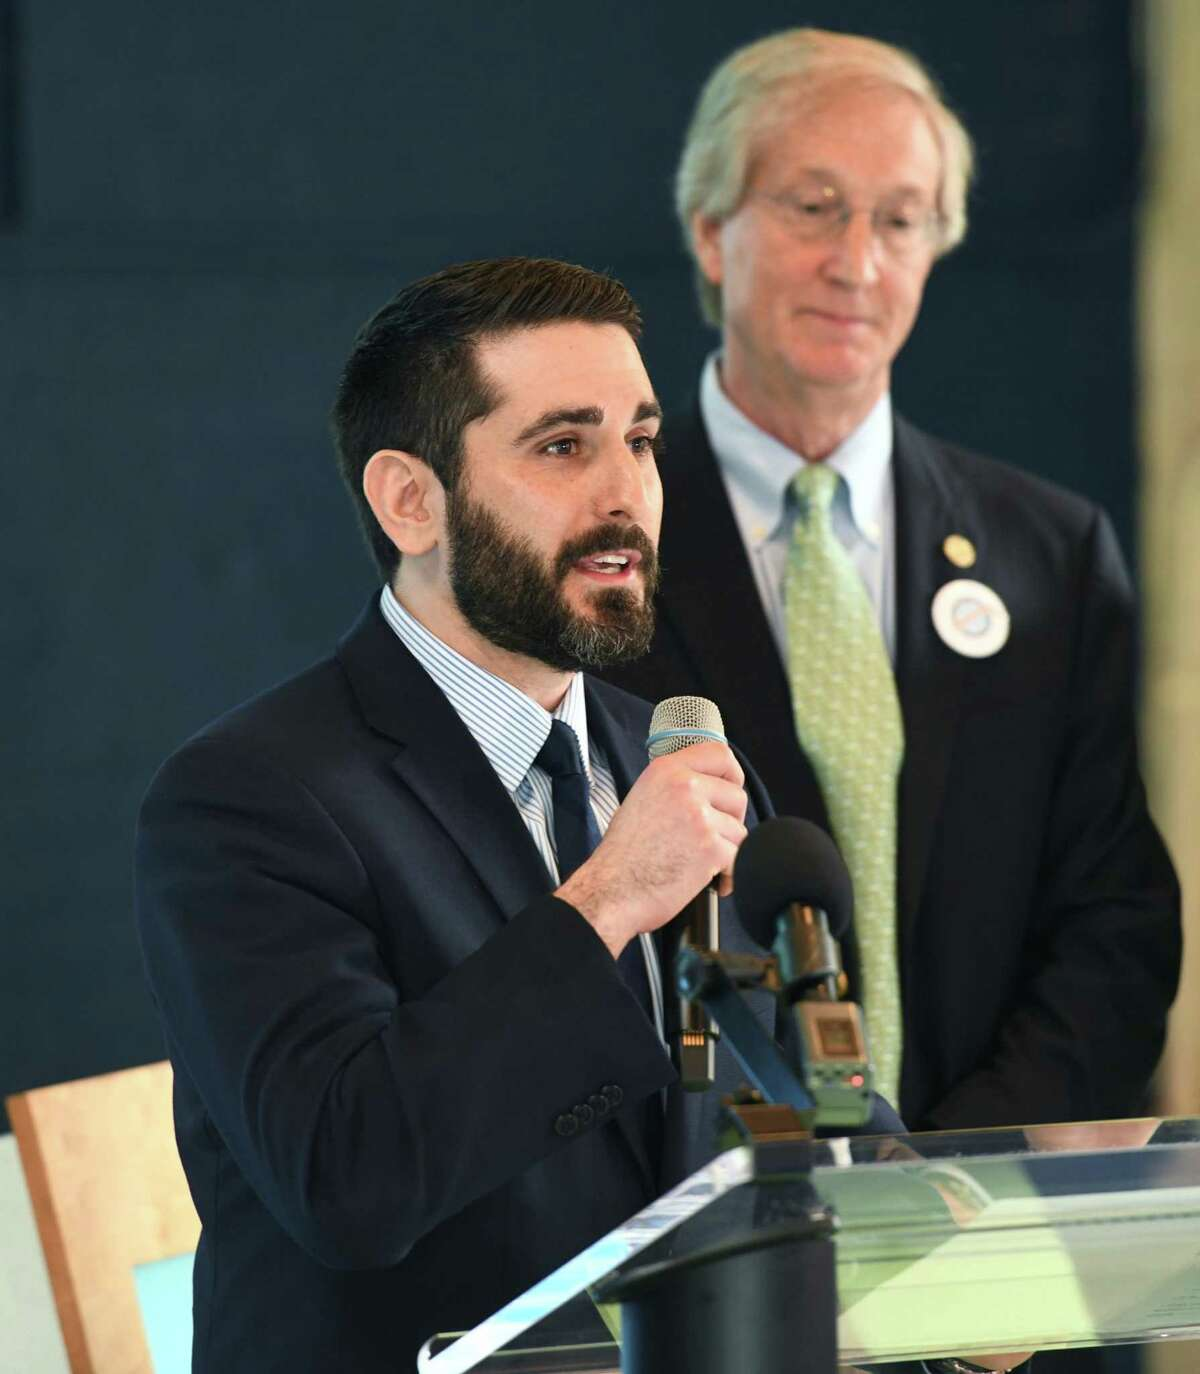 Stamford Board of Representatives member Jonathan Jacobson speaks during an Earth Day initiative press conference at the Martime Aquarium in Norwalk, Conn. Monday, April 22, 2019. Stamford and Norwalk leaders announced a plan to ban the use of single-use plastic straws and urged local businesses and residents to use more eco-friendly materials when possible.